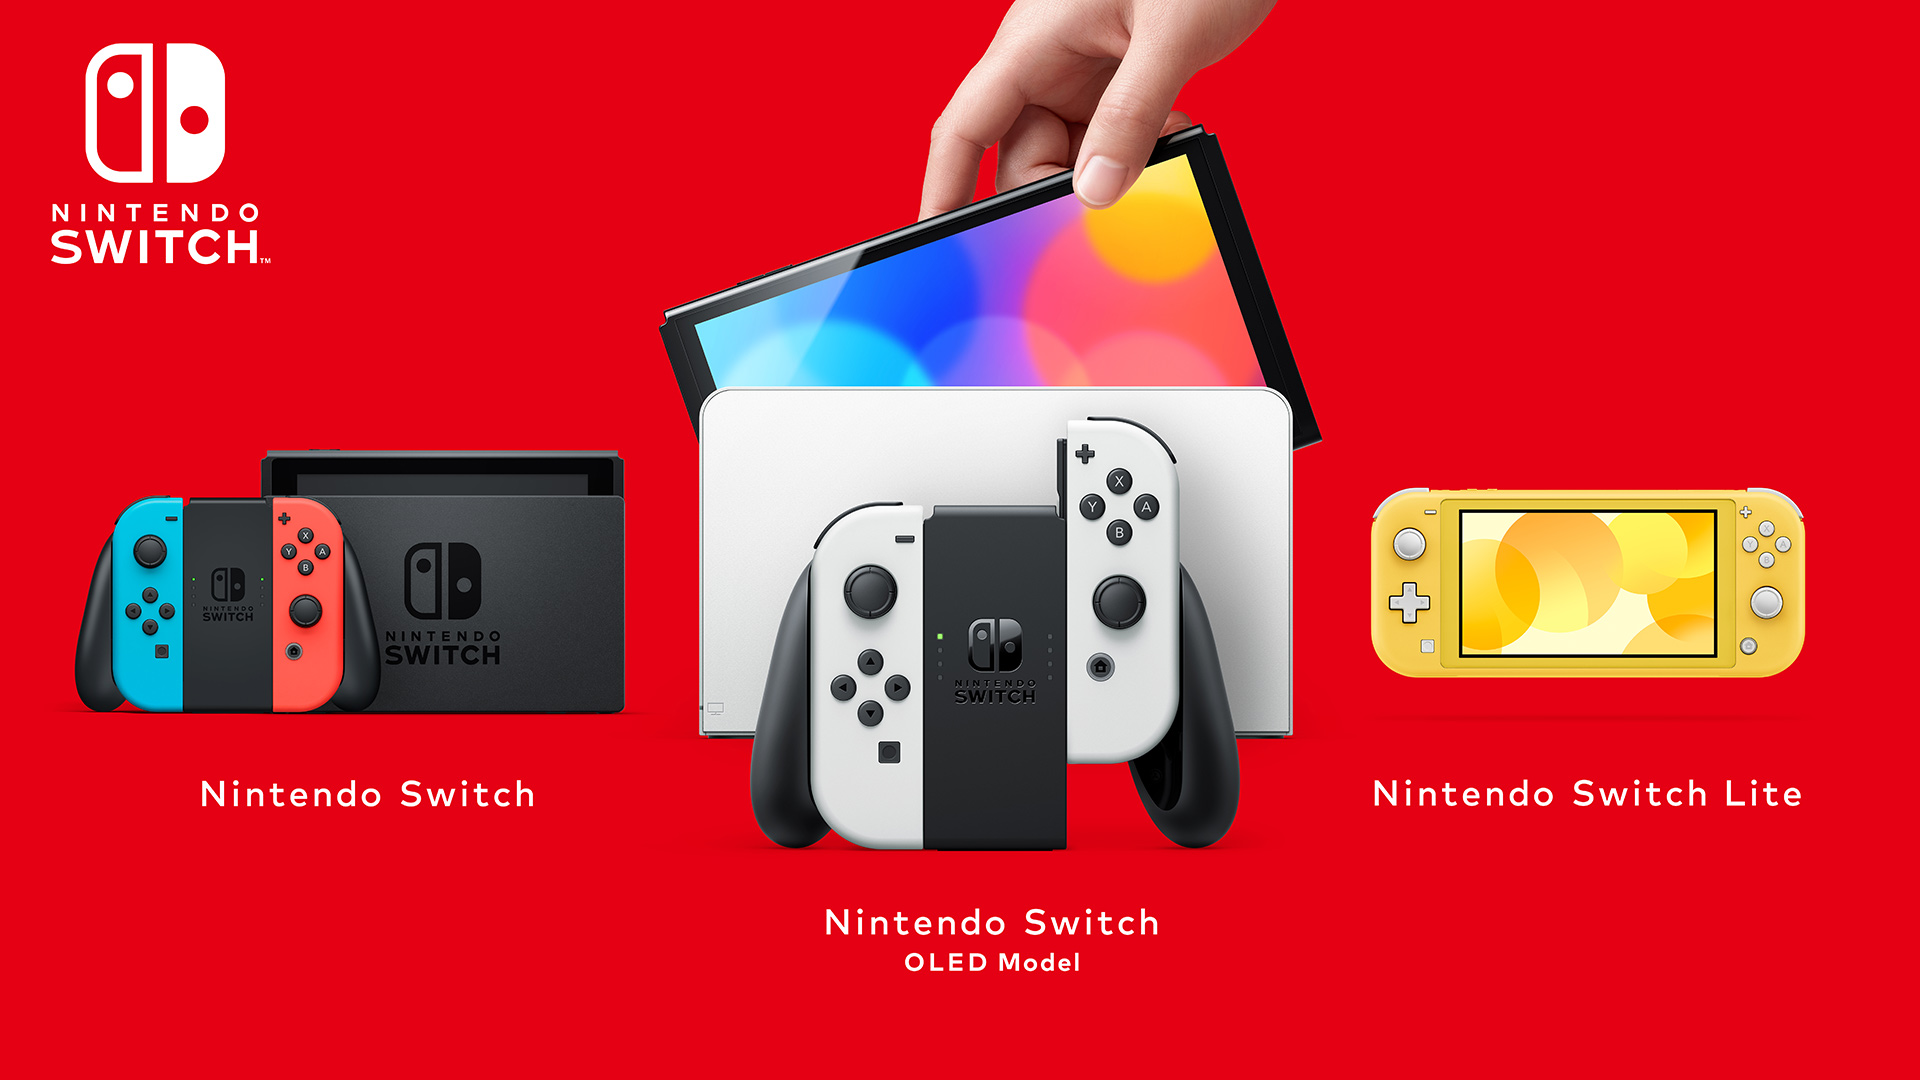 Nintendo Switch OLED Family Picture